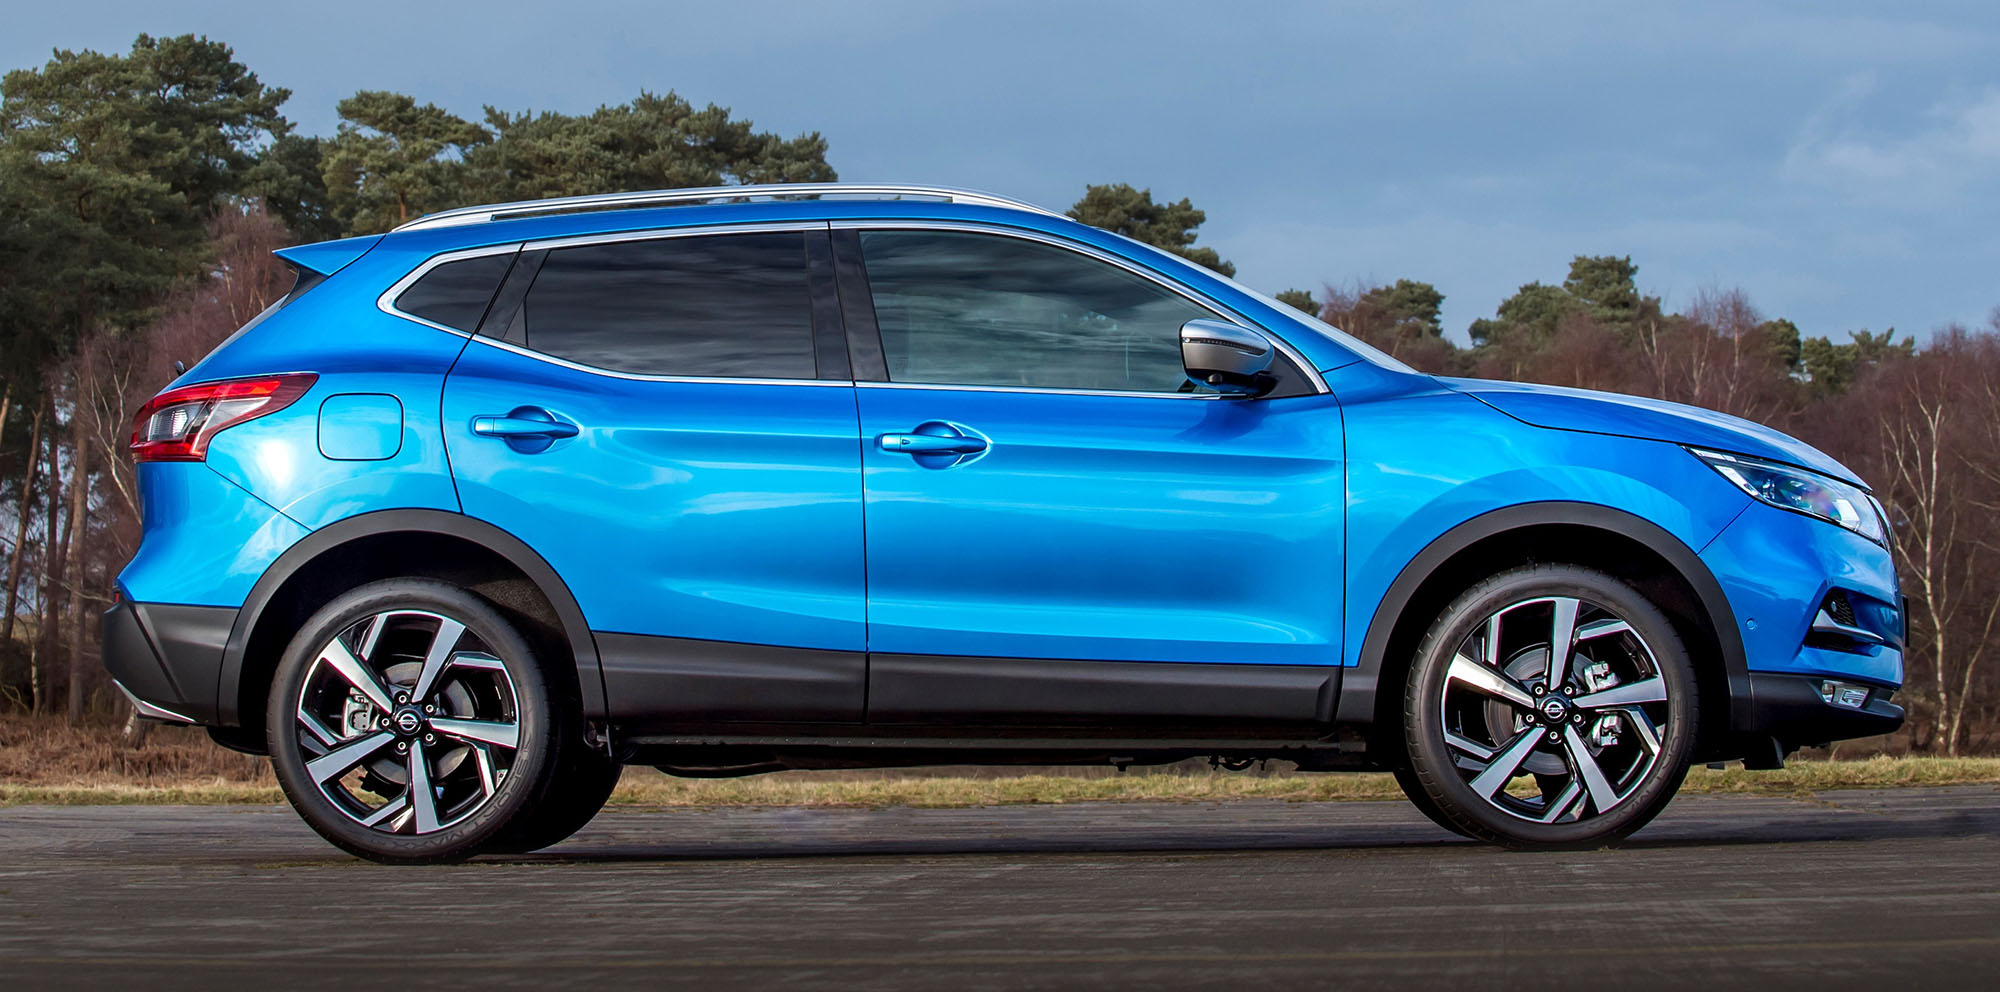 Subaru Older Models >> 2018 Nissan Qashqai facelift revealed, Australian debut due next year - photos | CarAdvice